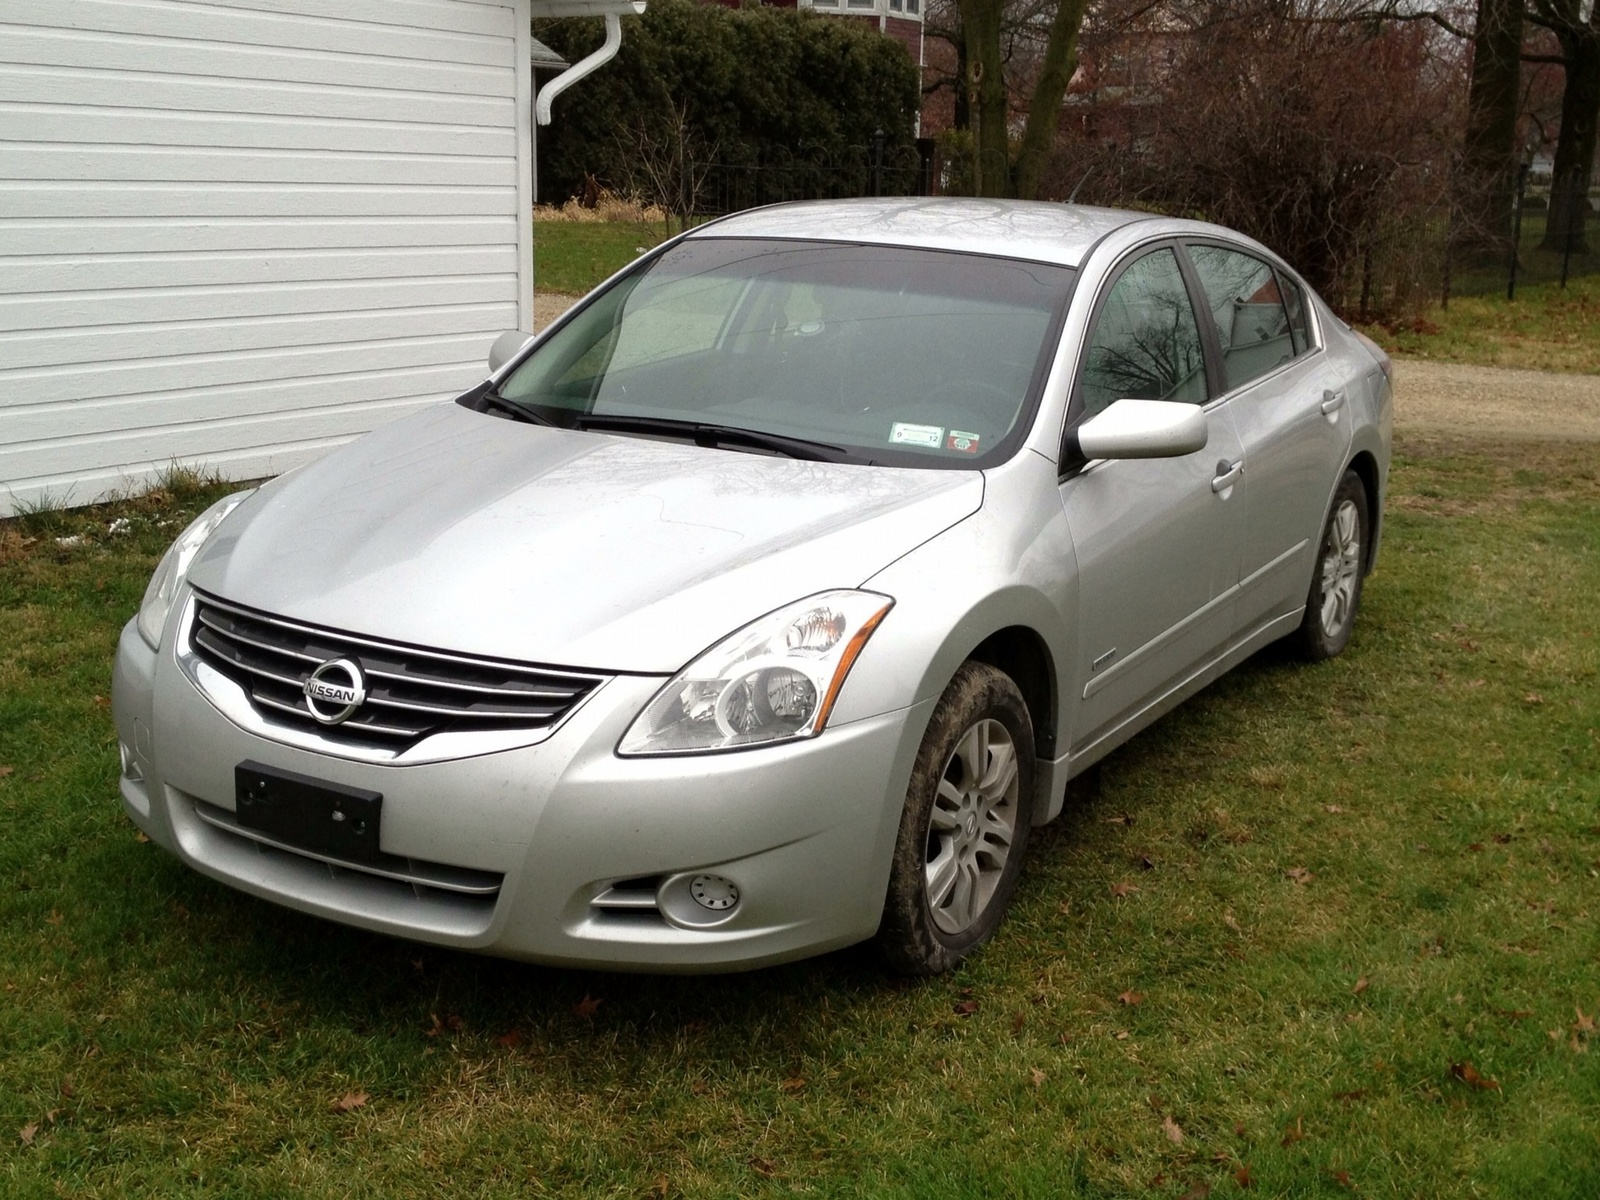 2011 nissan altima hybrid reviews specs and autos weblog. Black Bedroom Furniture Sets. Home Design Ideas